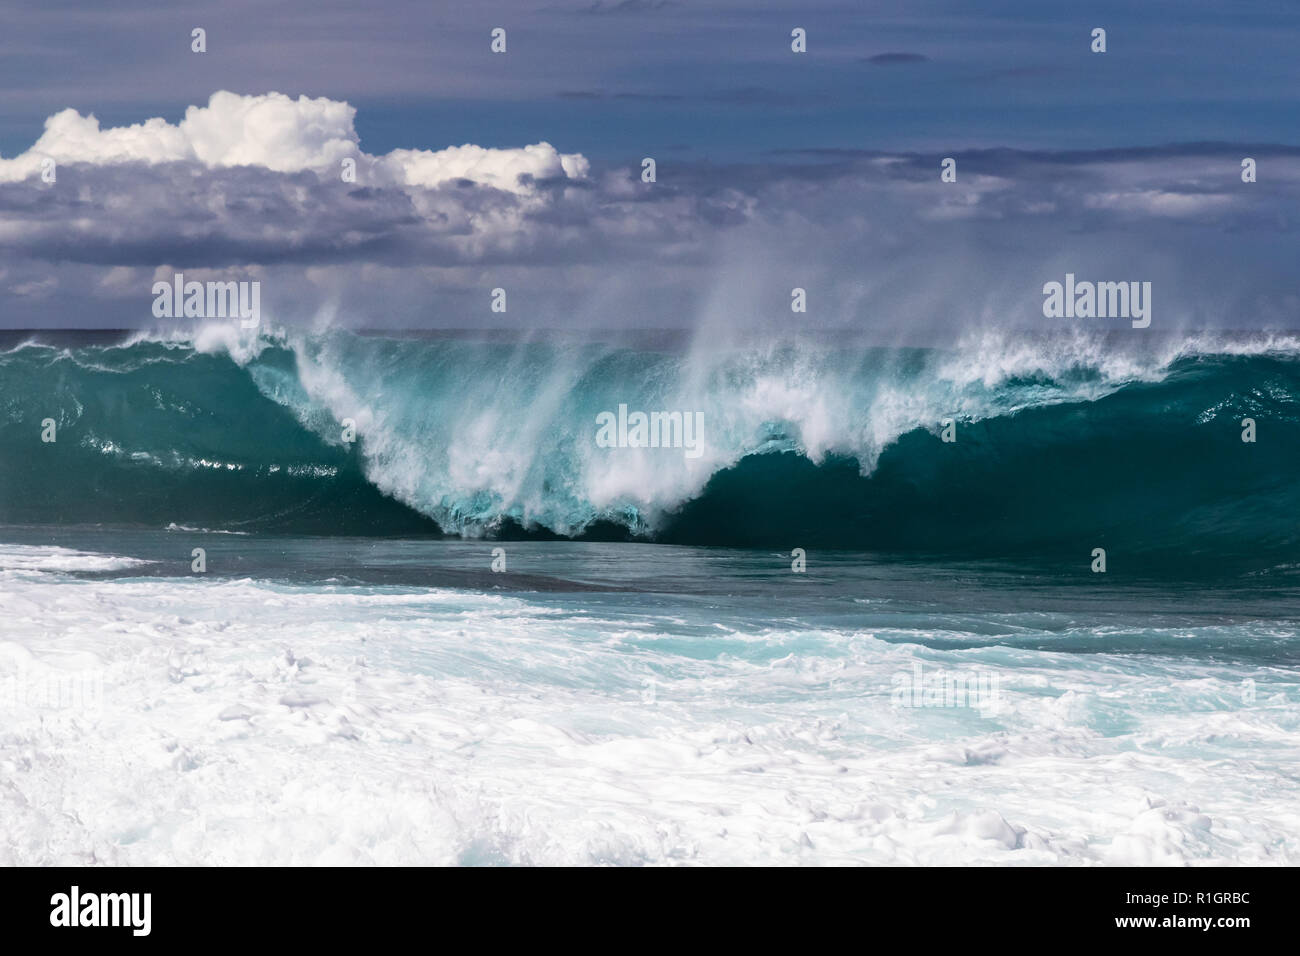 Wave curling on Hawaiian beach, about to crash on the water below. Spray flyng back on wave's top. South Point. White sea spray thrown into the air. Stock Photo